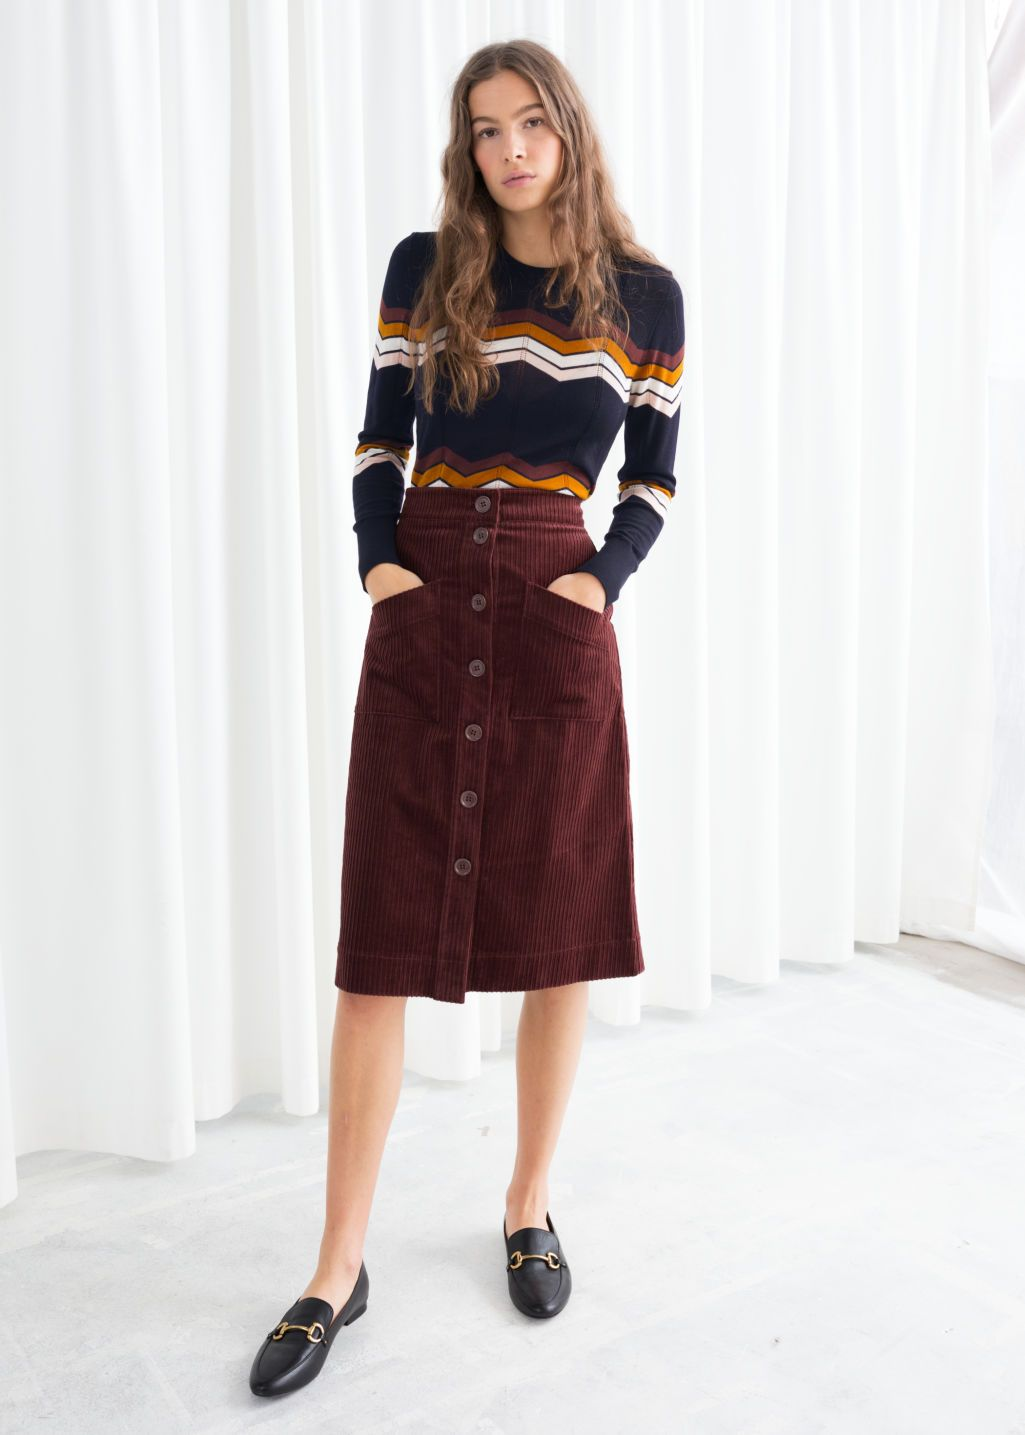 67ee61beb A-Line Corduroy Skirt in 2019 | Wish list | Corduroy skirt, A line ...